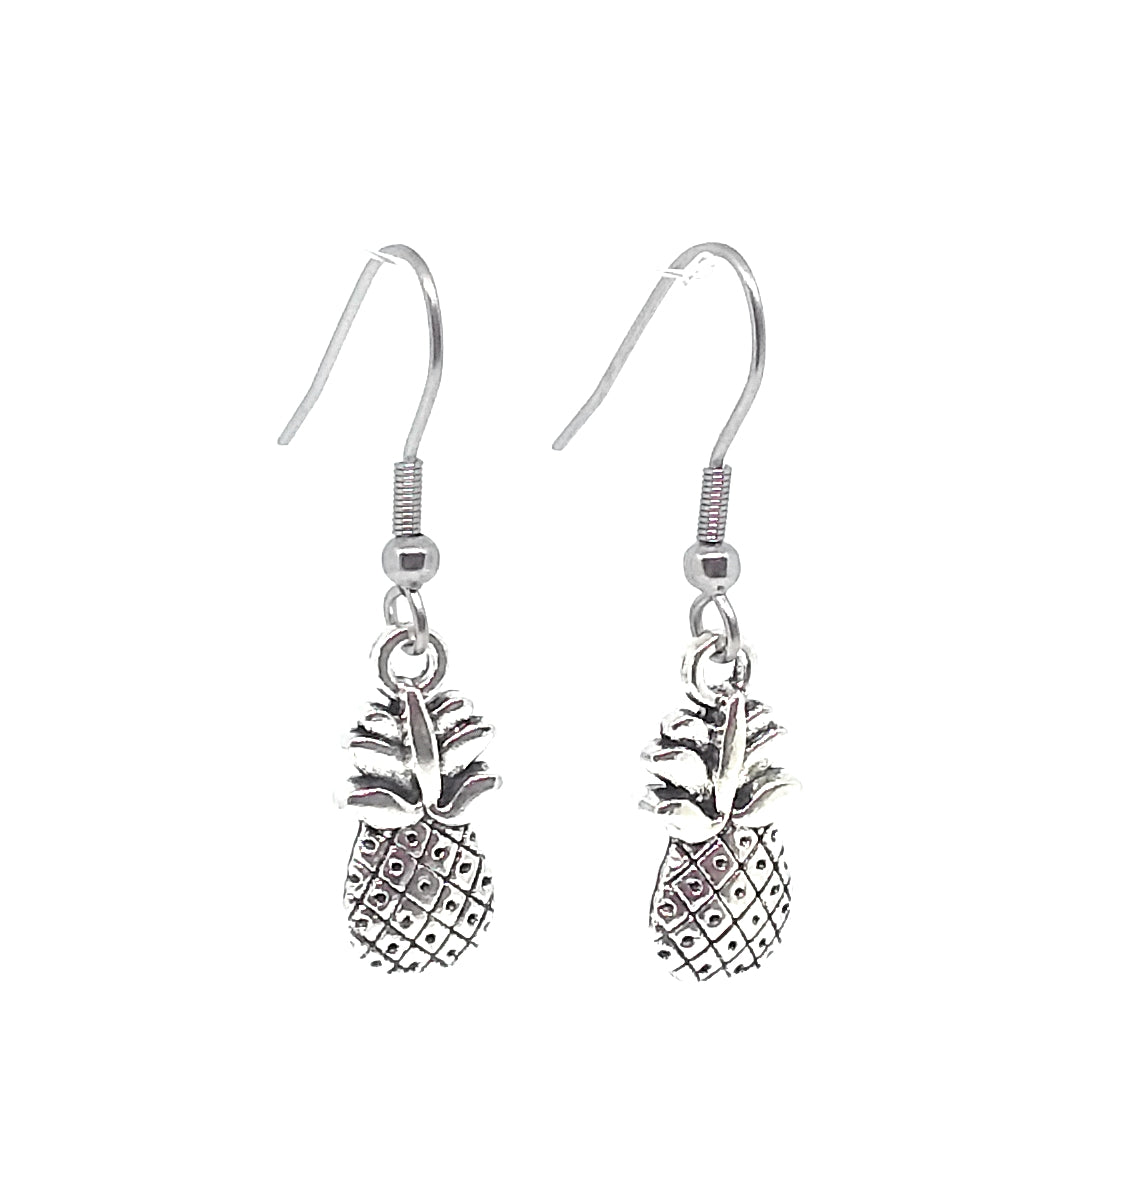 Pineapple Charm Dangle Earrings with Stainless Steel Ear Wires